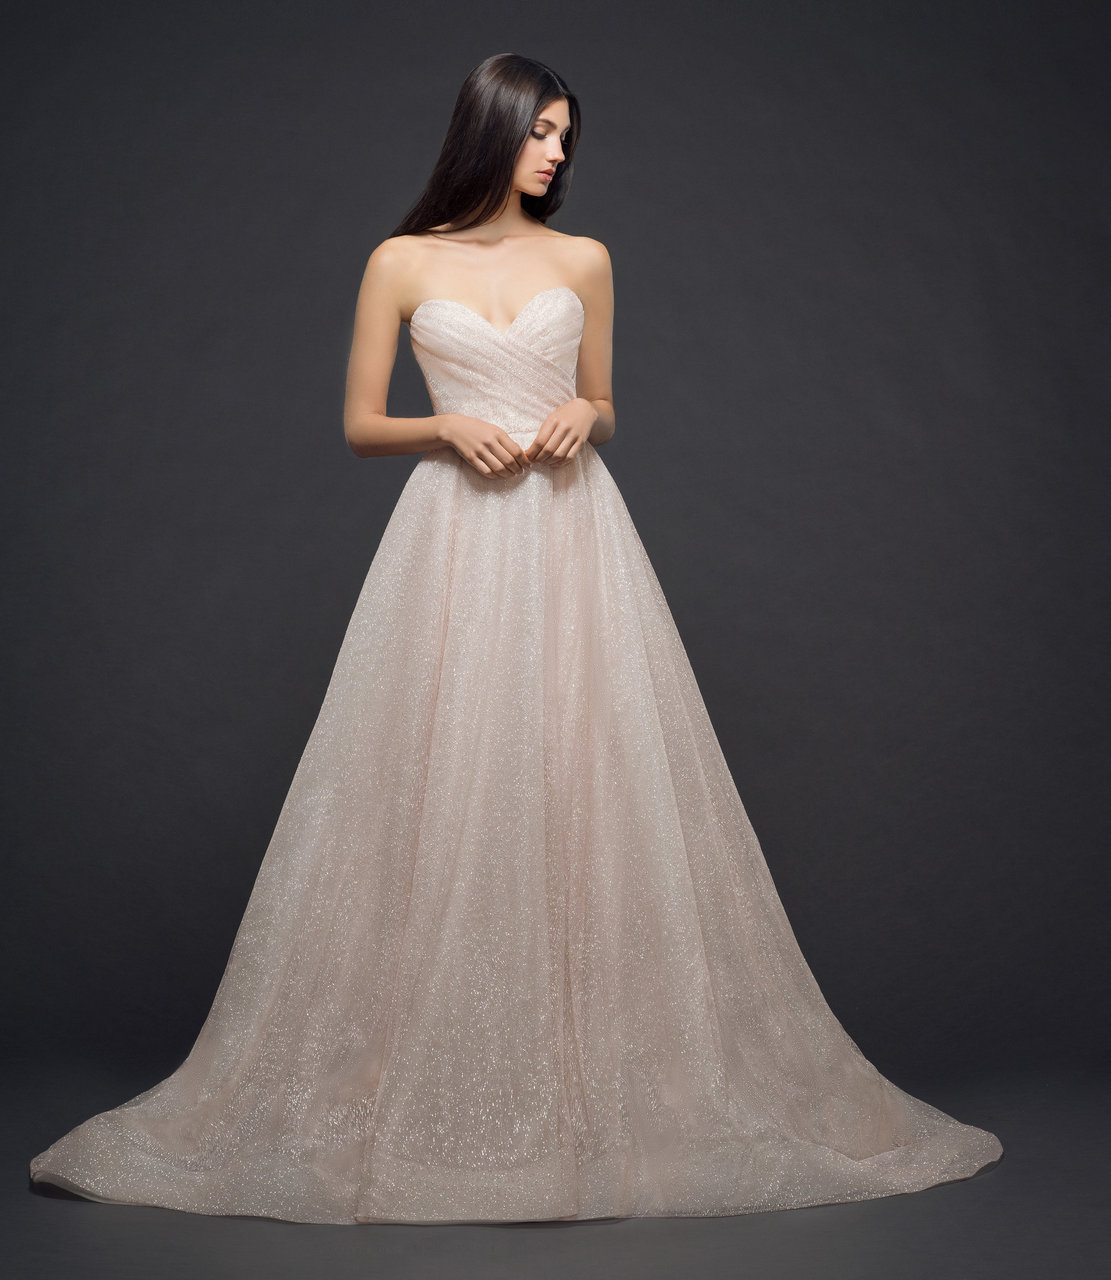 Blush shimmer tulle ball gown, strapless sweetheart neckline, draped bodice and natural waist, box pleated skirt with side pockets, chapel train.